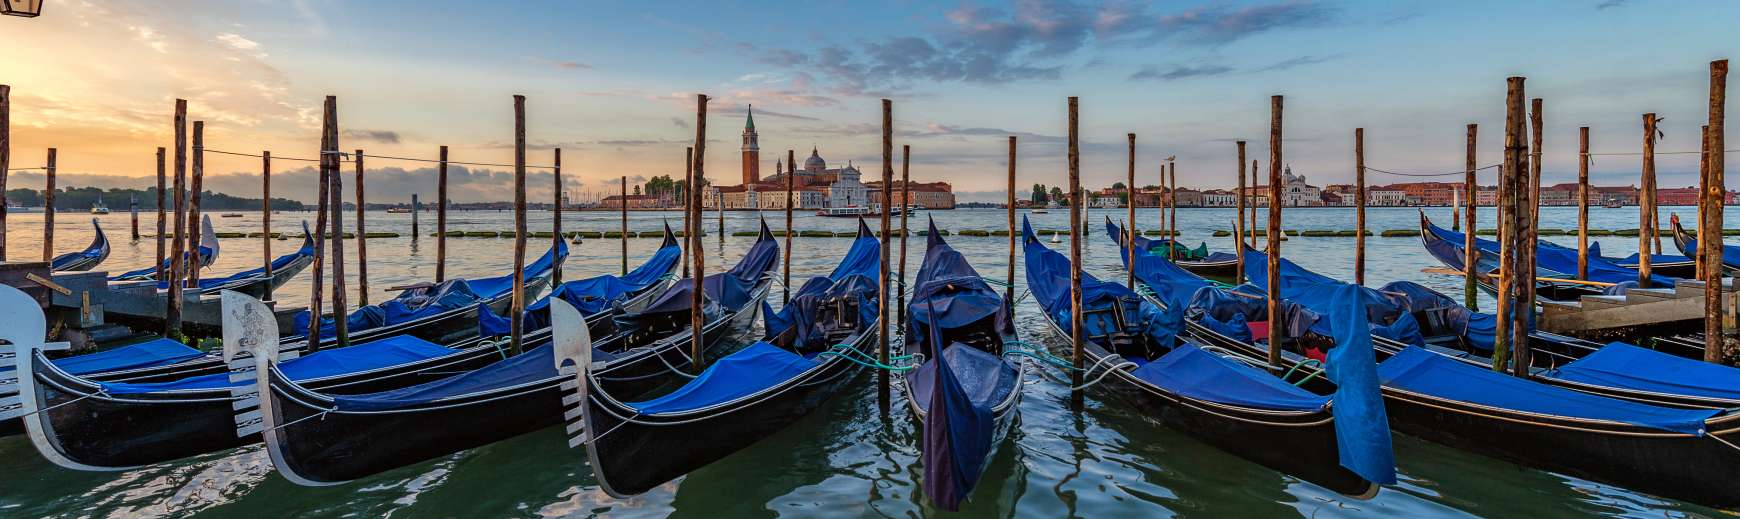 Row of gondolas covered by blue tarps, Venice Italy Vacation Packages